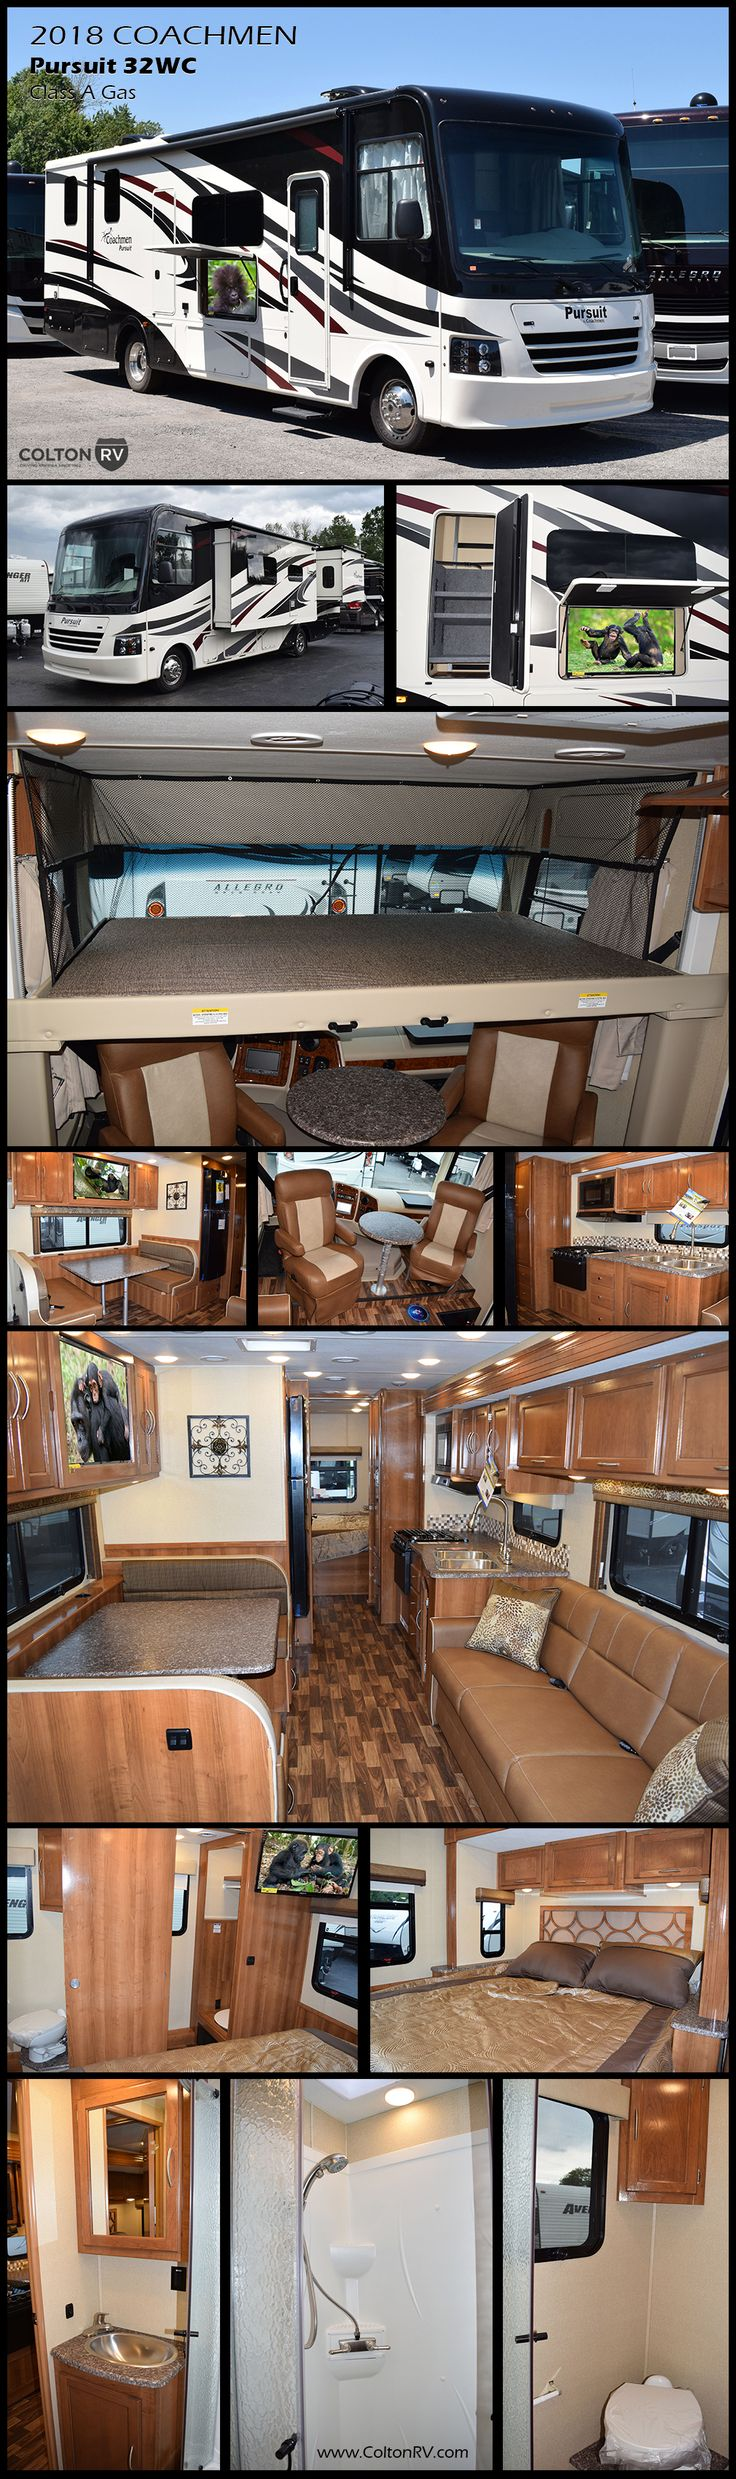 "You will enjoy the journey when you have this much comfort surrounding you. This 2018 Coachmen Pursuit 32WC Class A Gas Coach offers you a spacious interior with creature comforts just like home so you can explore until your heart's content. You will find a Mega-booth dinette, a 40"" LED TV, a convenient drop-down bunk, a complete bath and much more!"